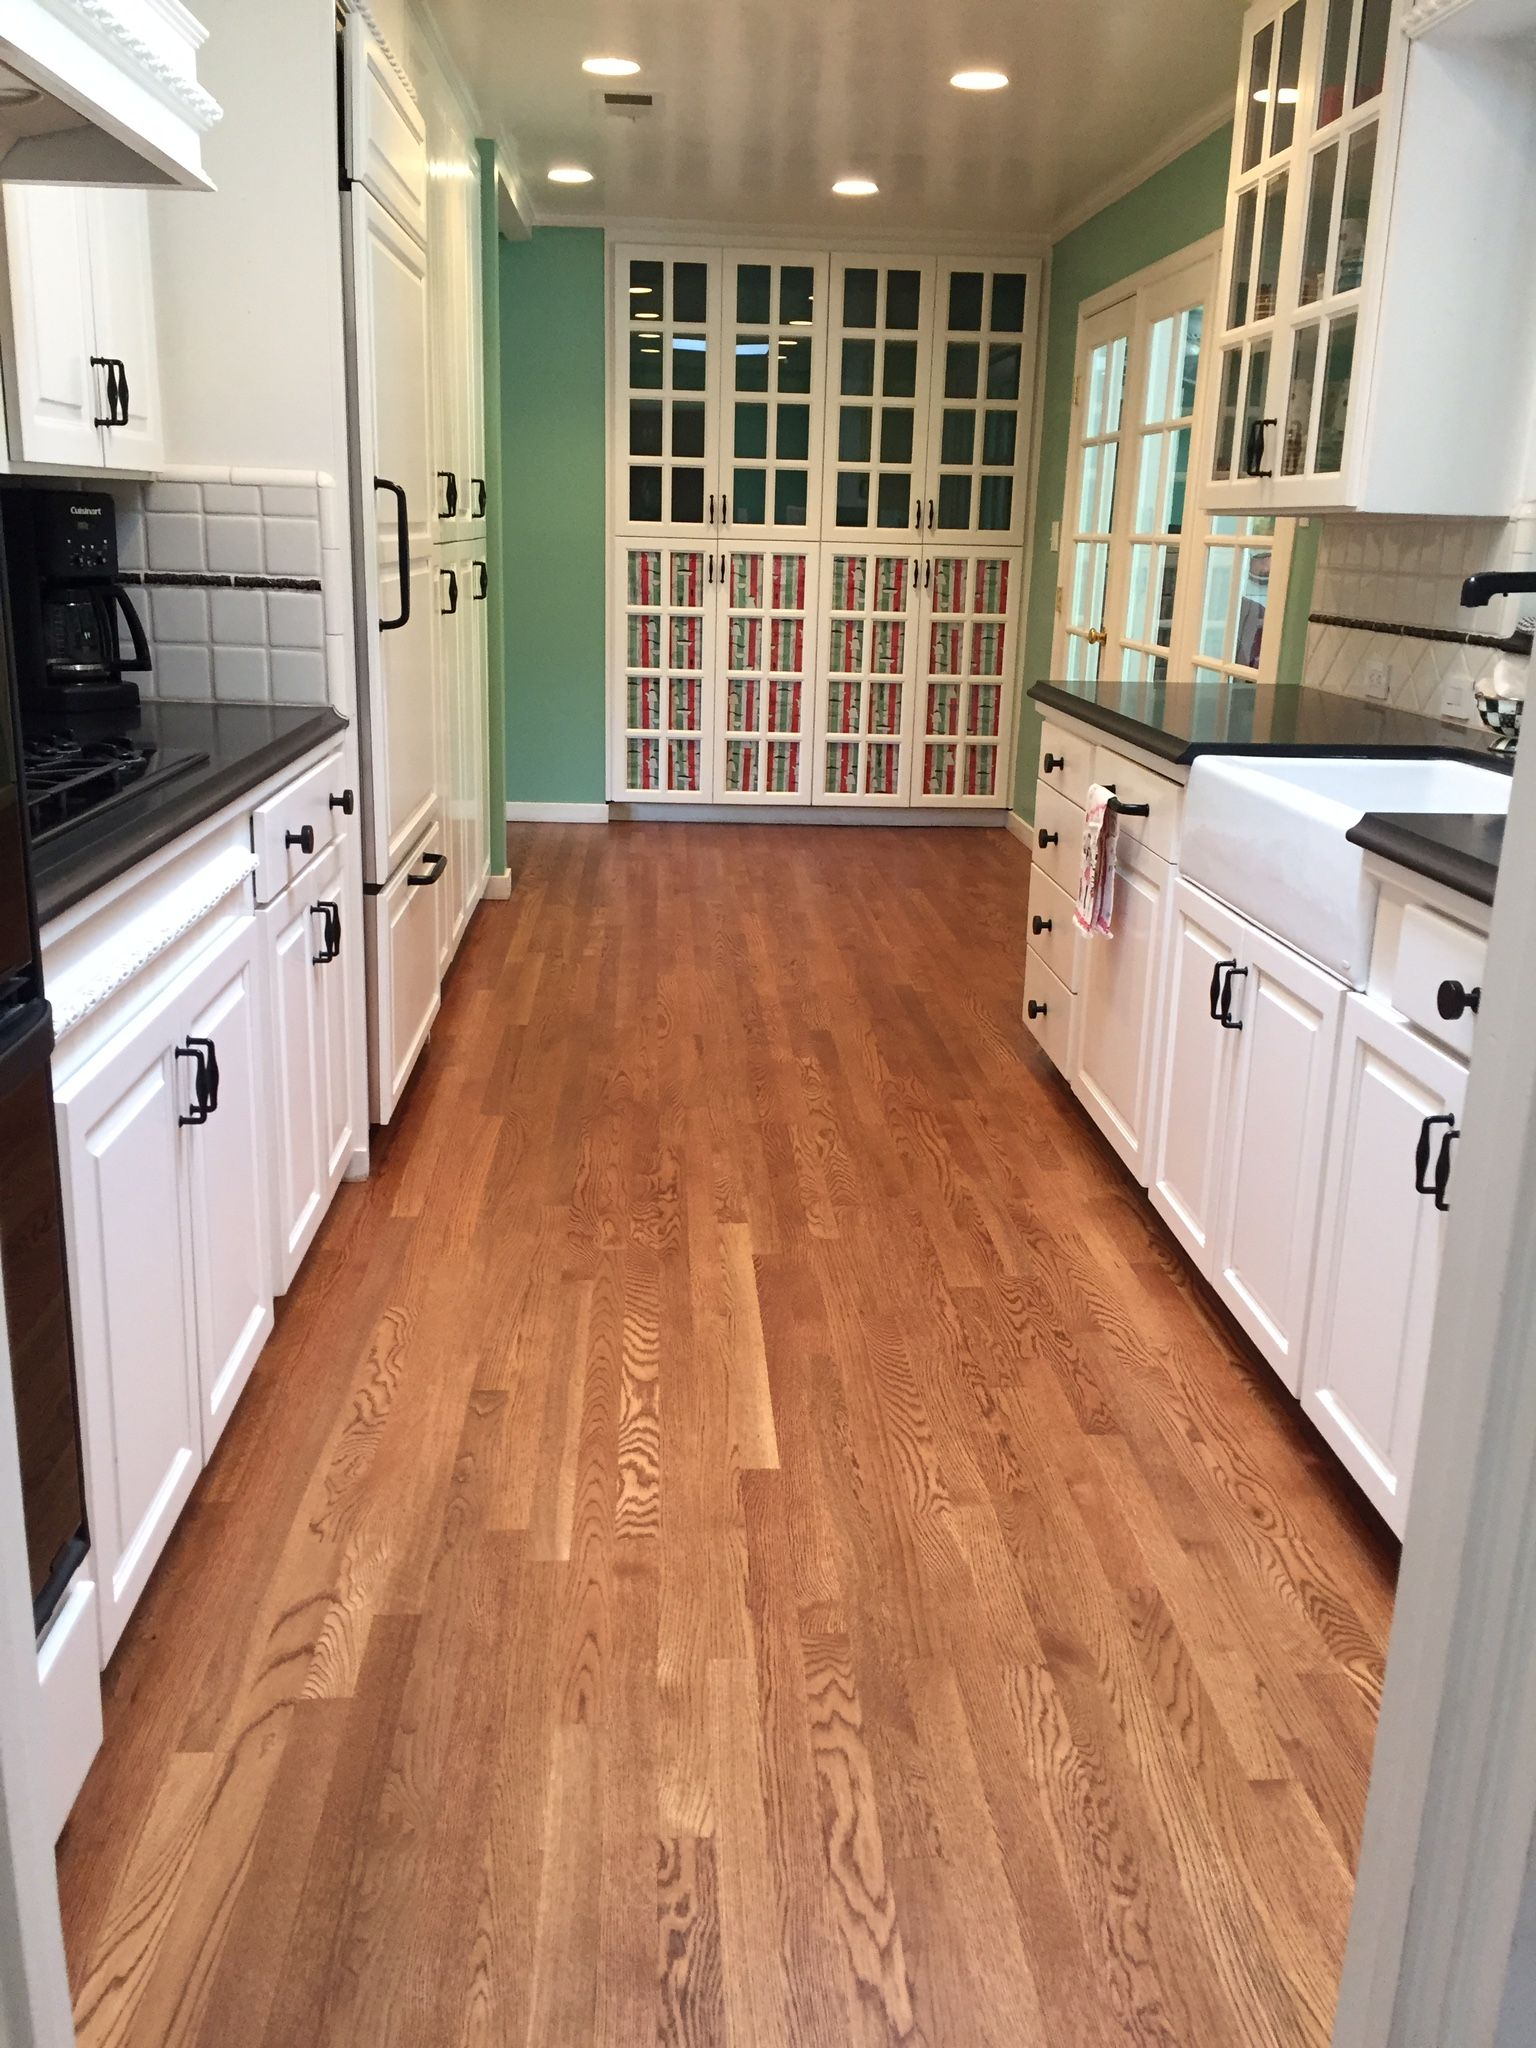 Kitchen Floor White Oak Stained In English Chestnut